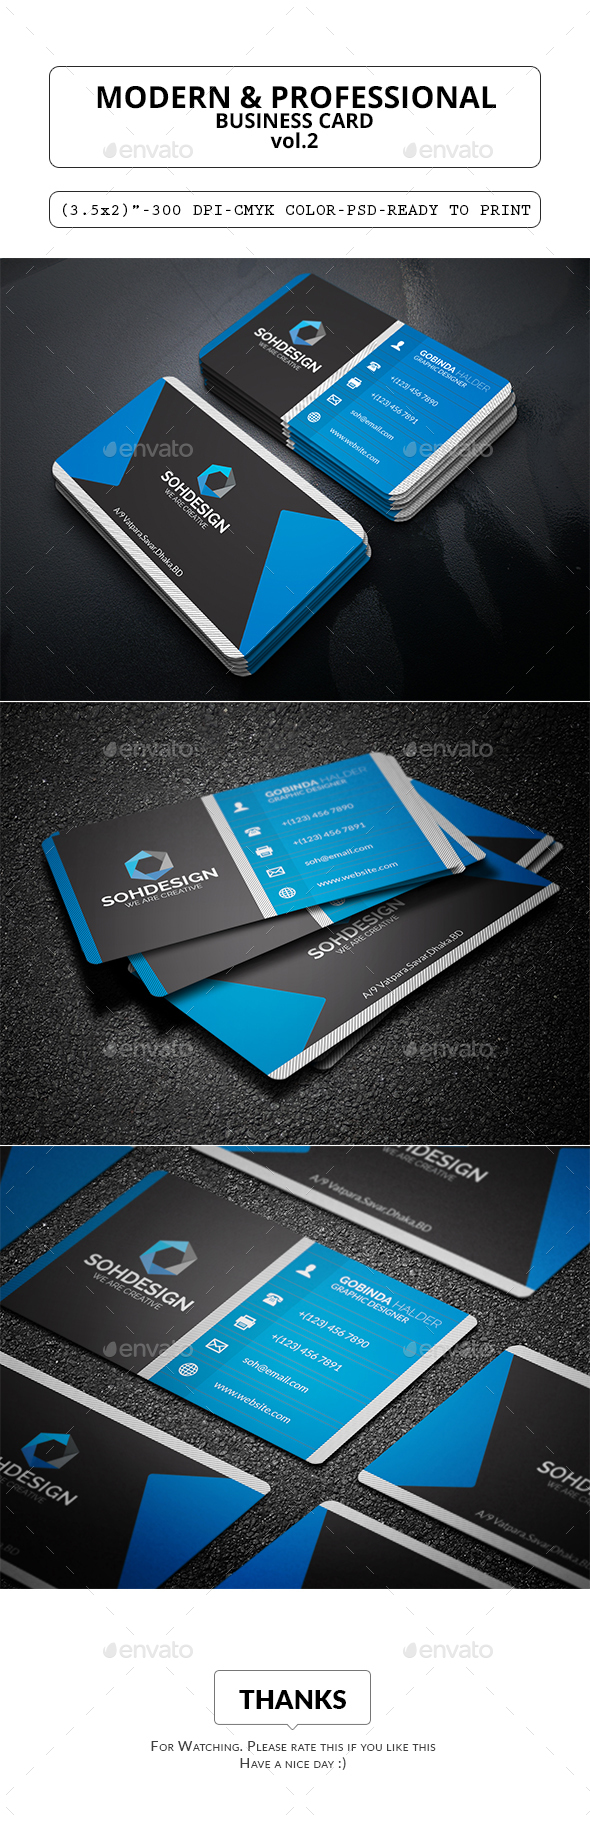 Modern & Professional Business Card Vol.2 - Corporate Business Cards